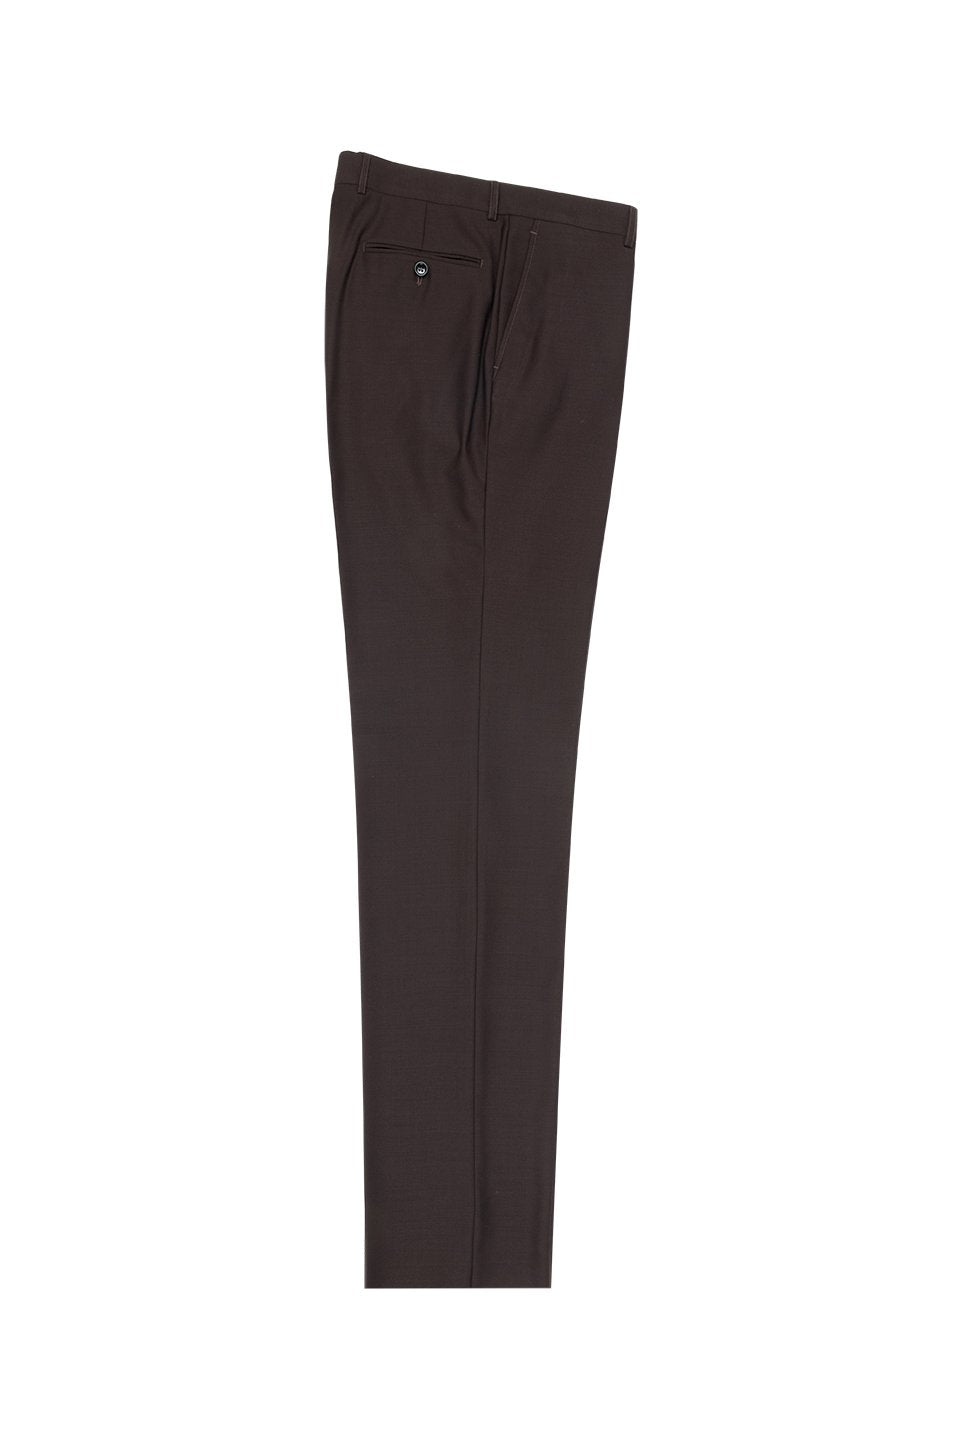 Tiglio Brown Solid Flat Front Dress Pants